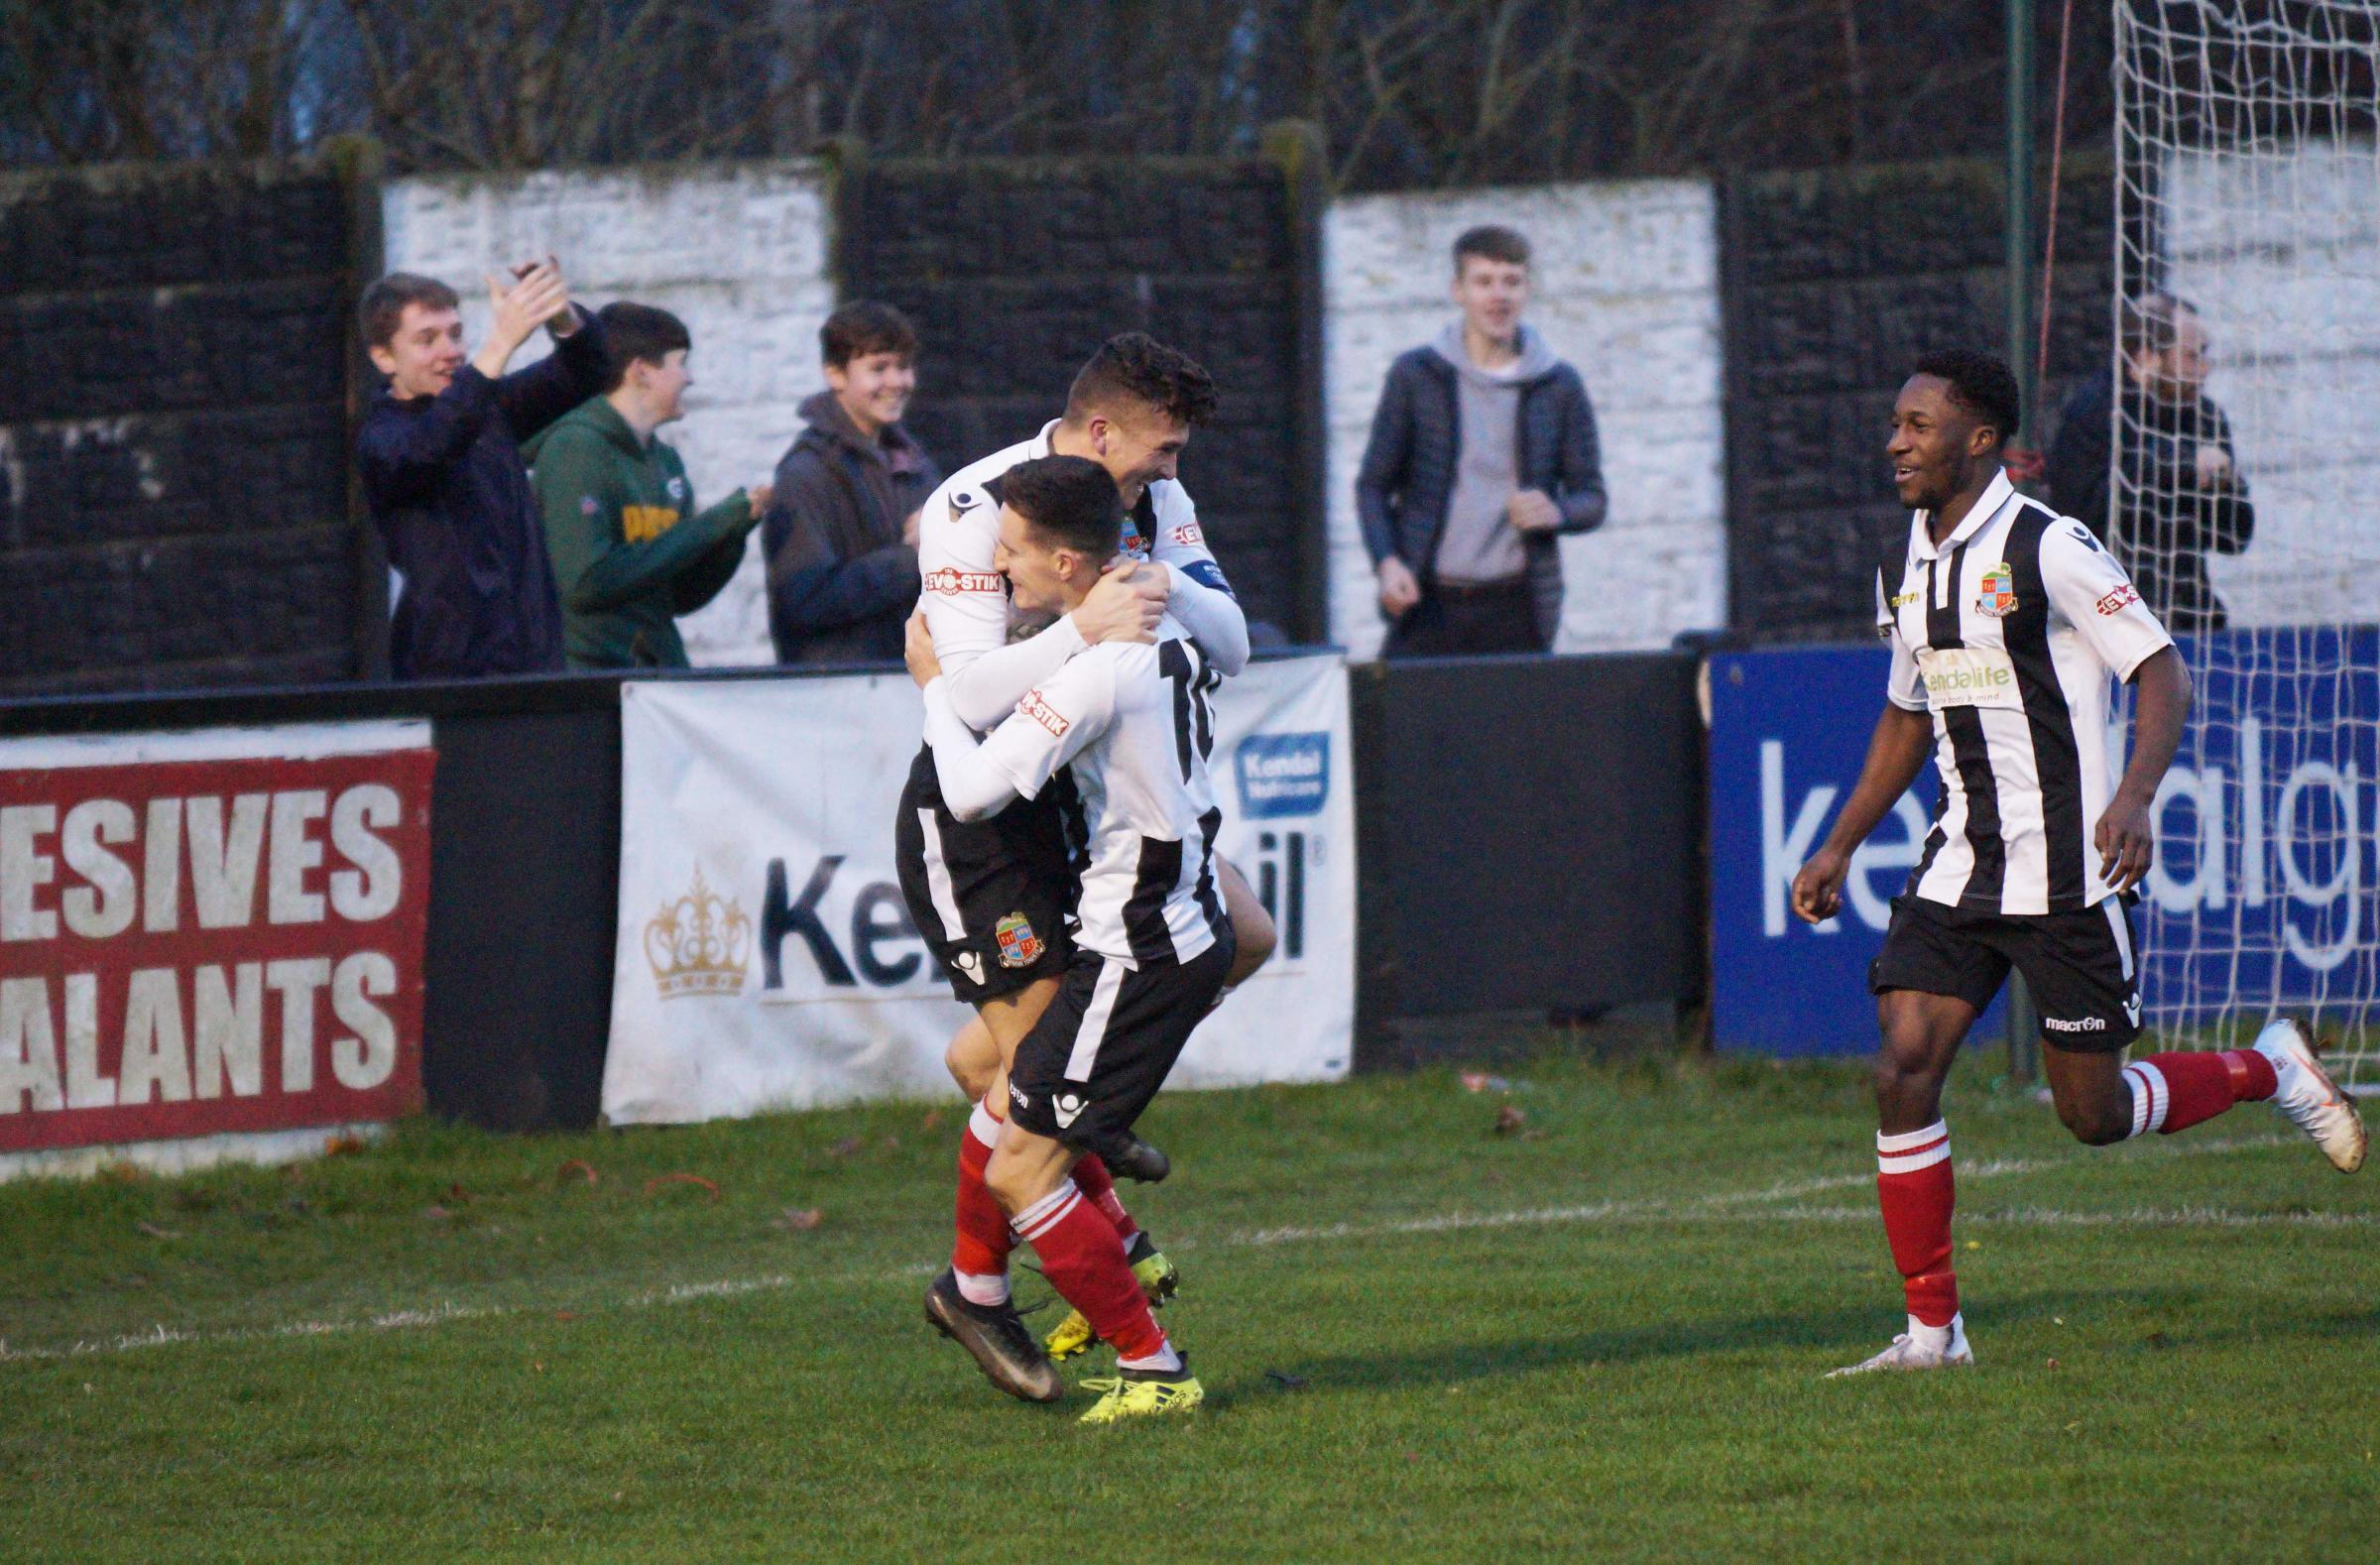 Ben Thomas and Steven Yawson celebrate with Scott Harries after he scored for Kendal